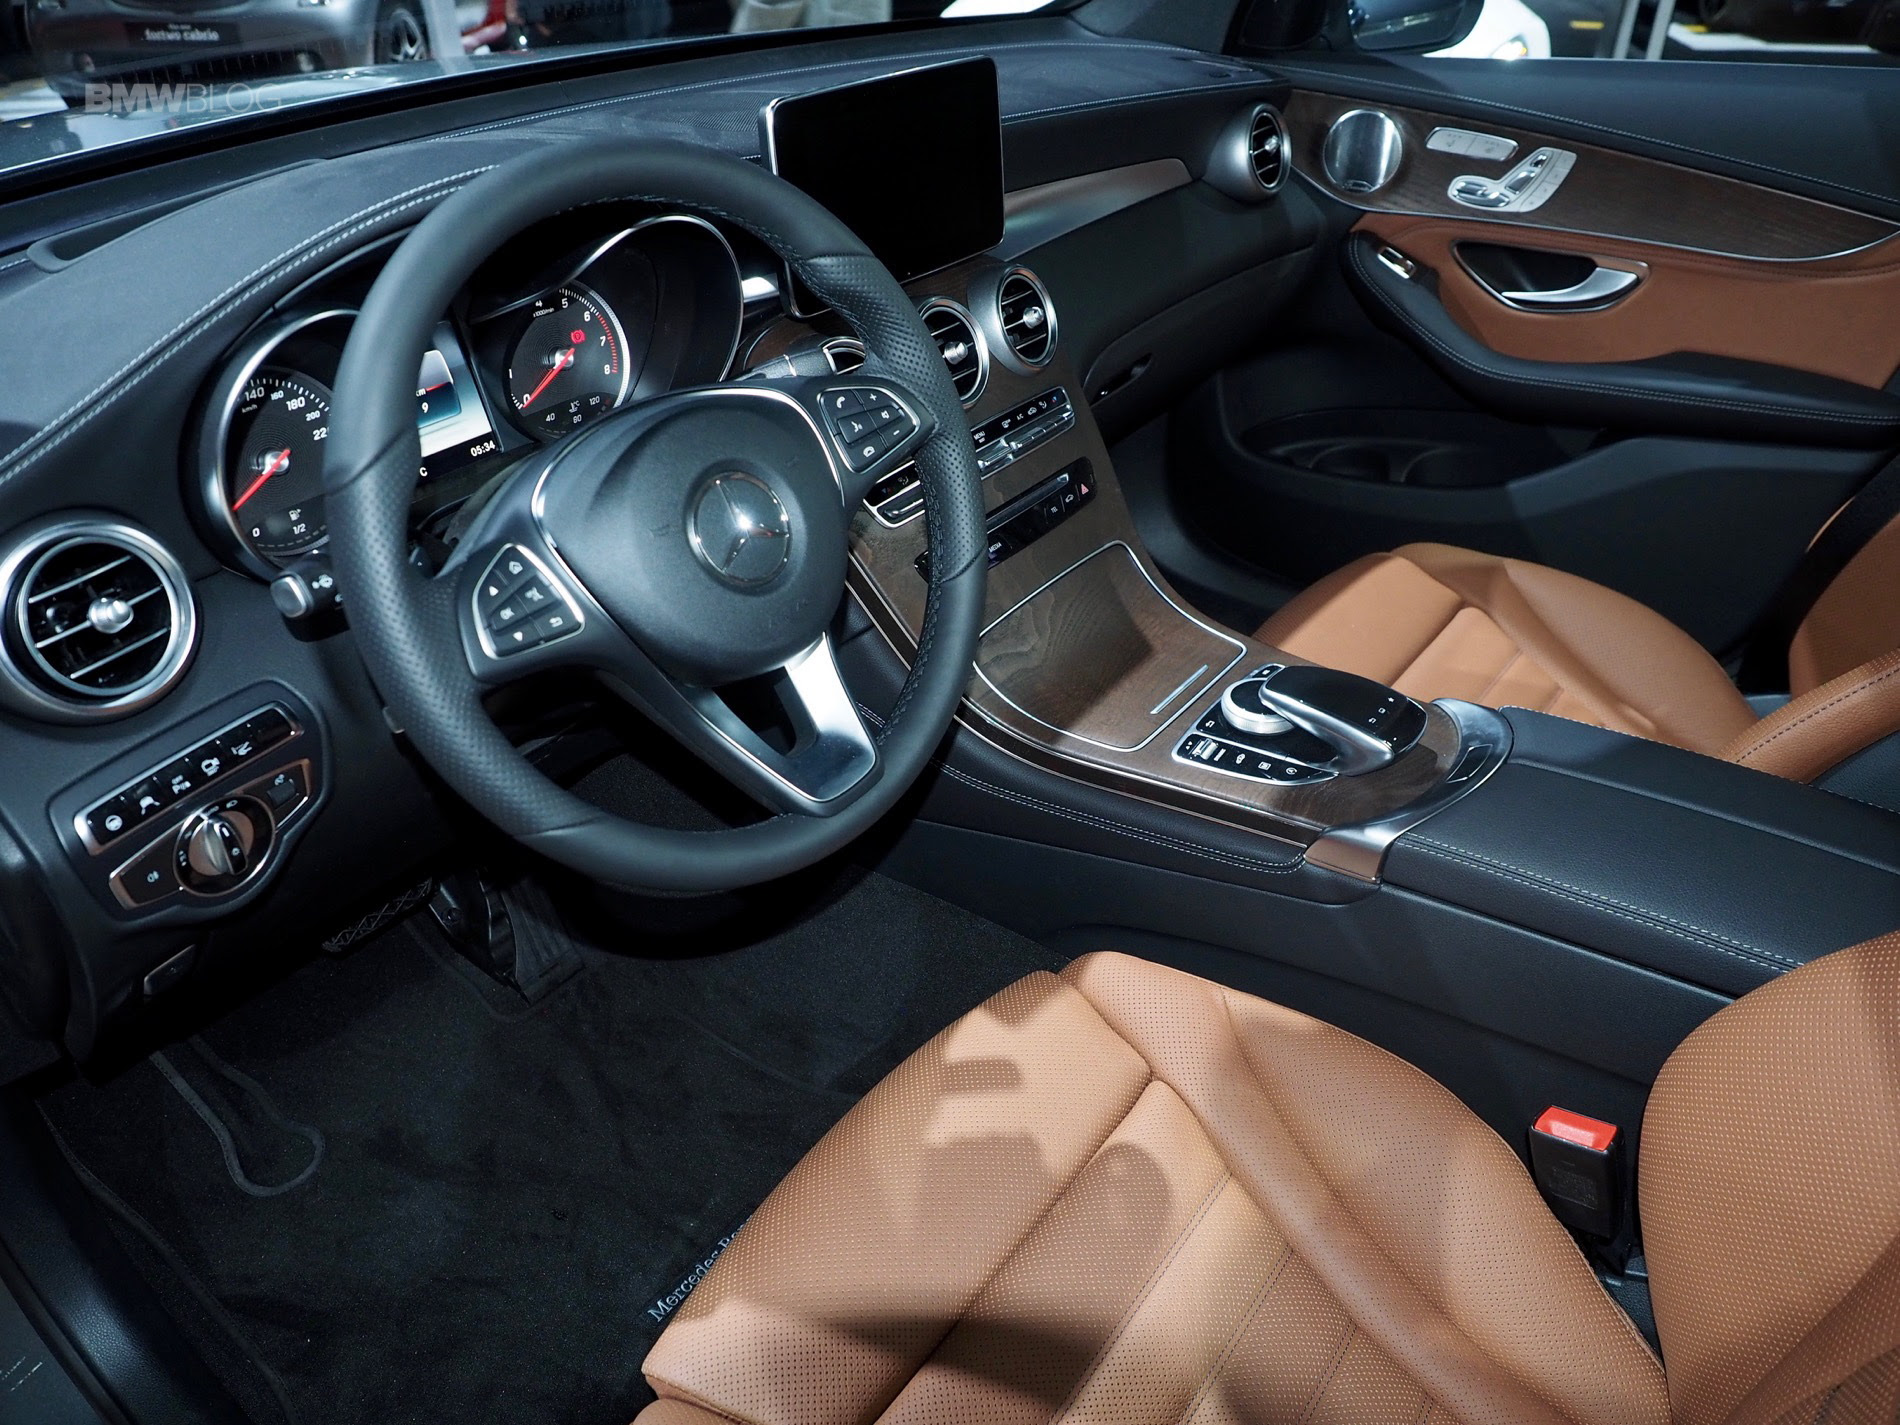 2016 NYIAS: Mercedes-Benz GLC Coupe – BMW X4 competitor